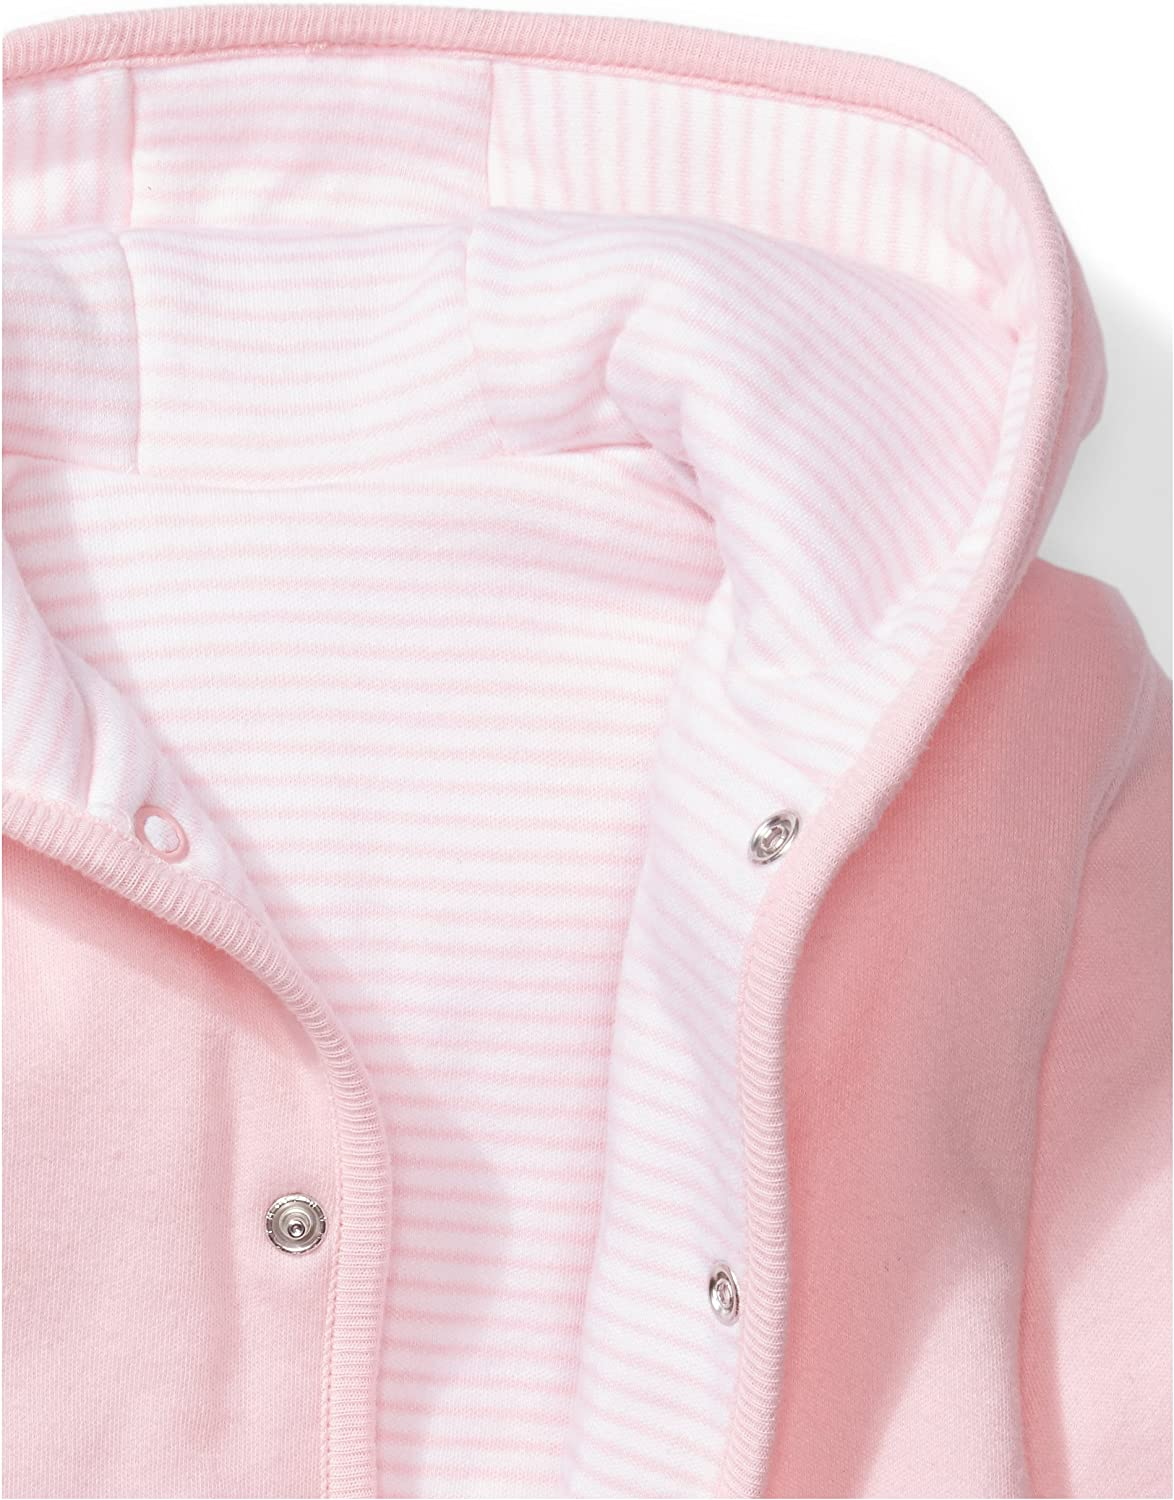 Pink Blush, Moon and Back Baby Reversible Jacket with Hood